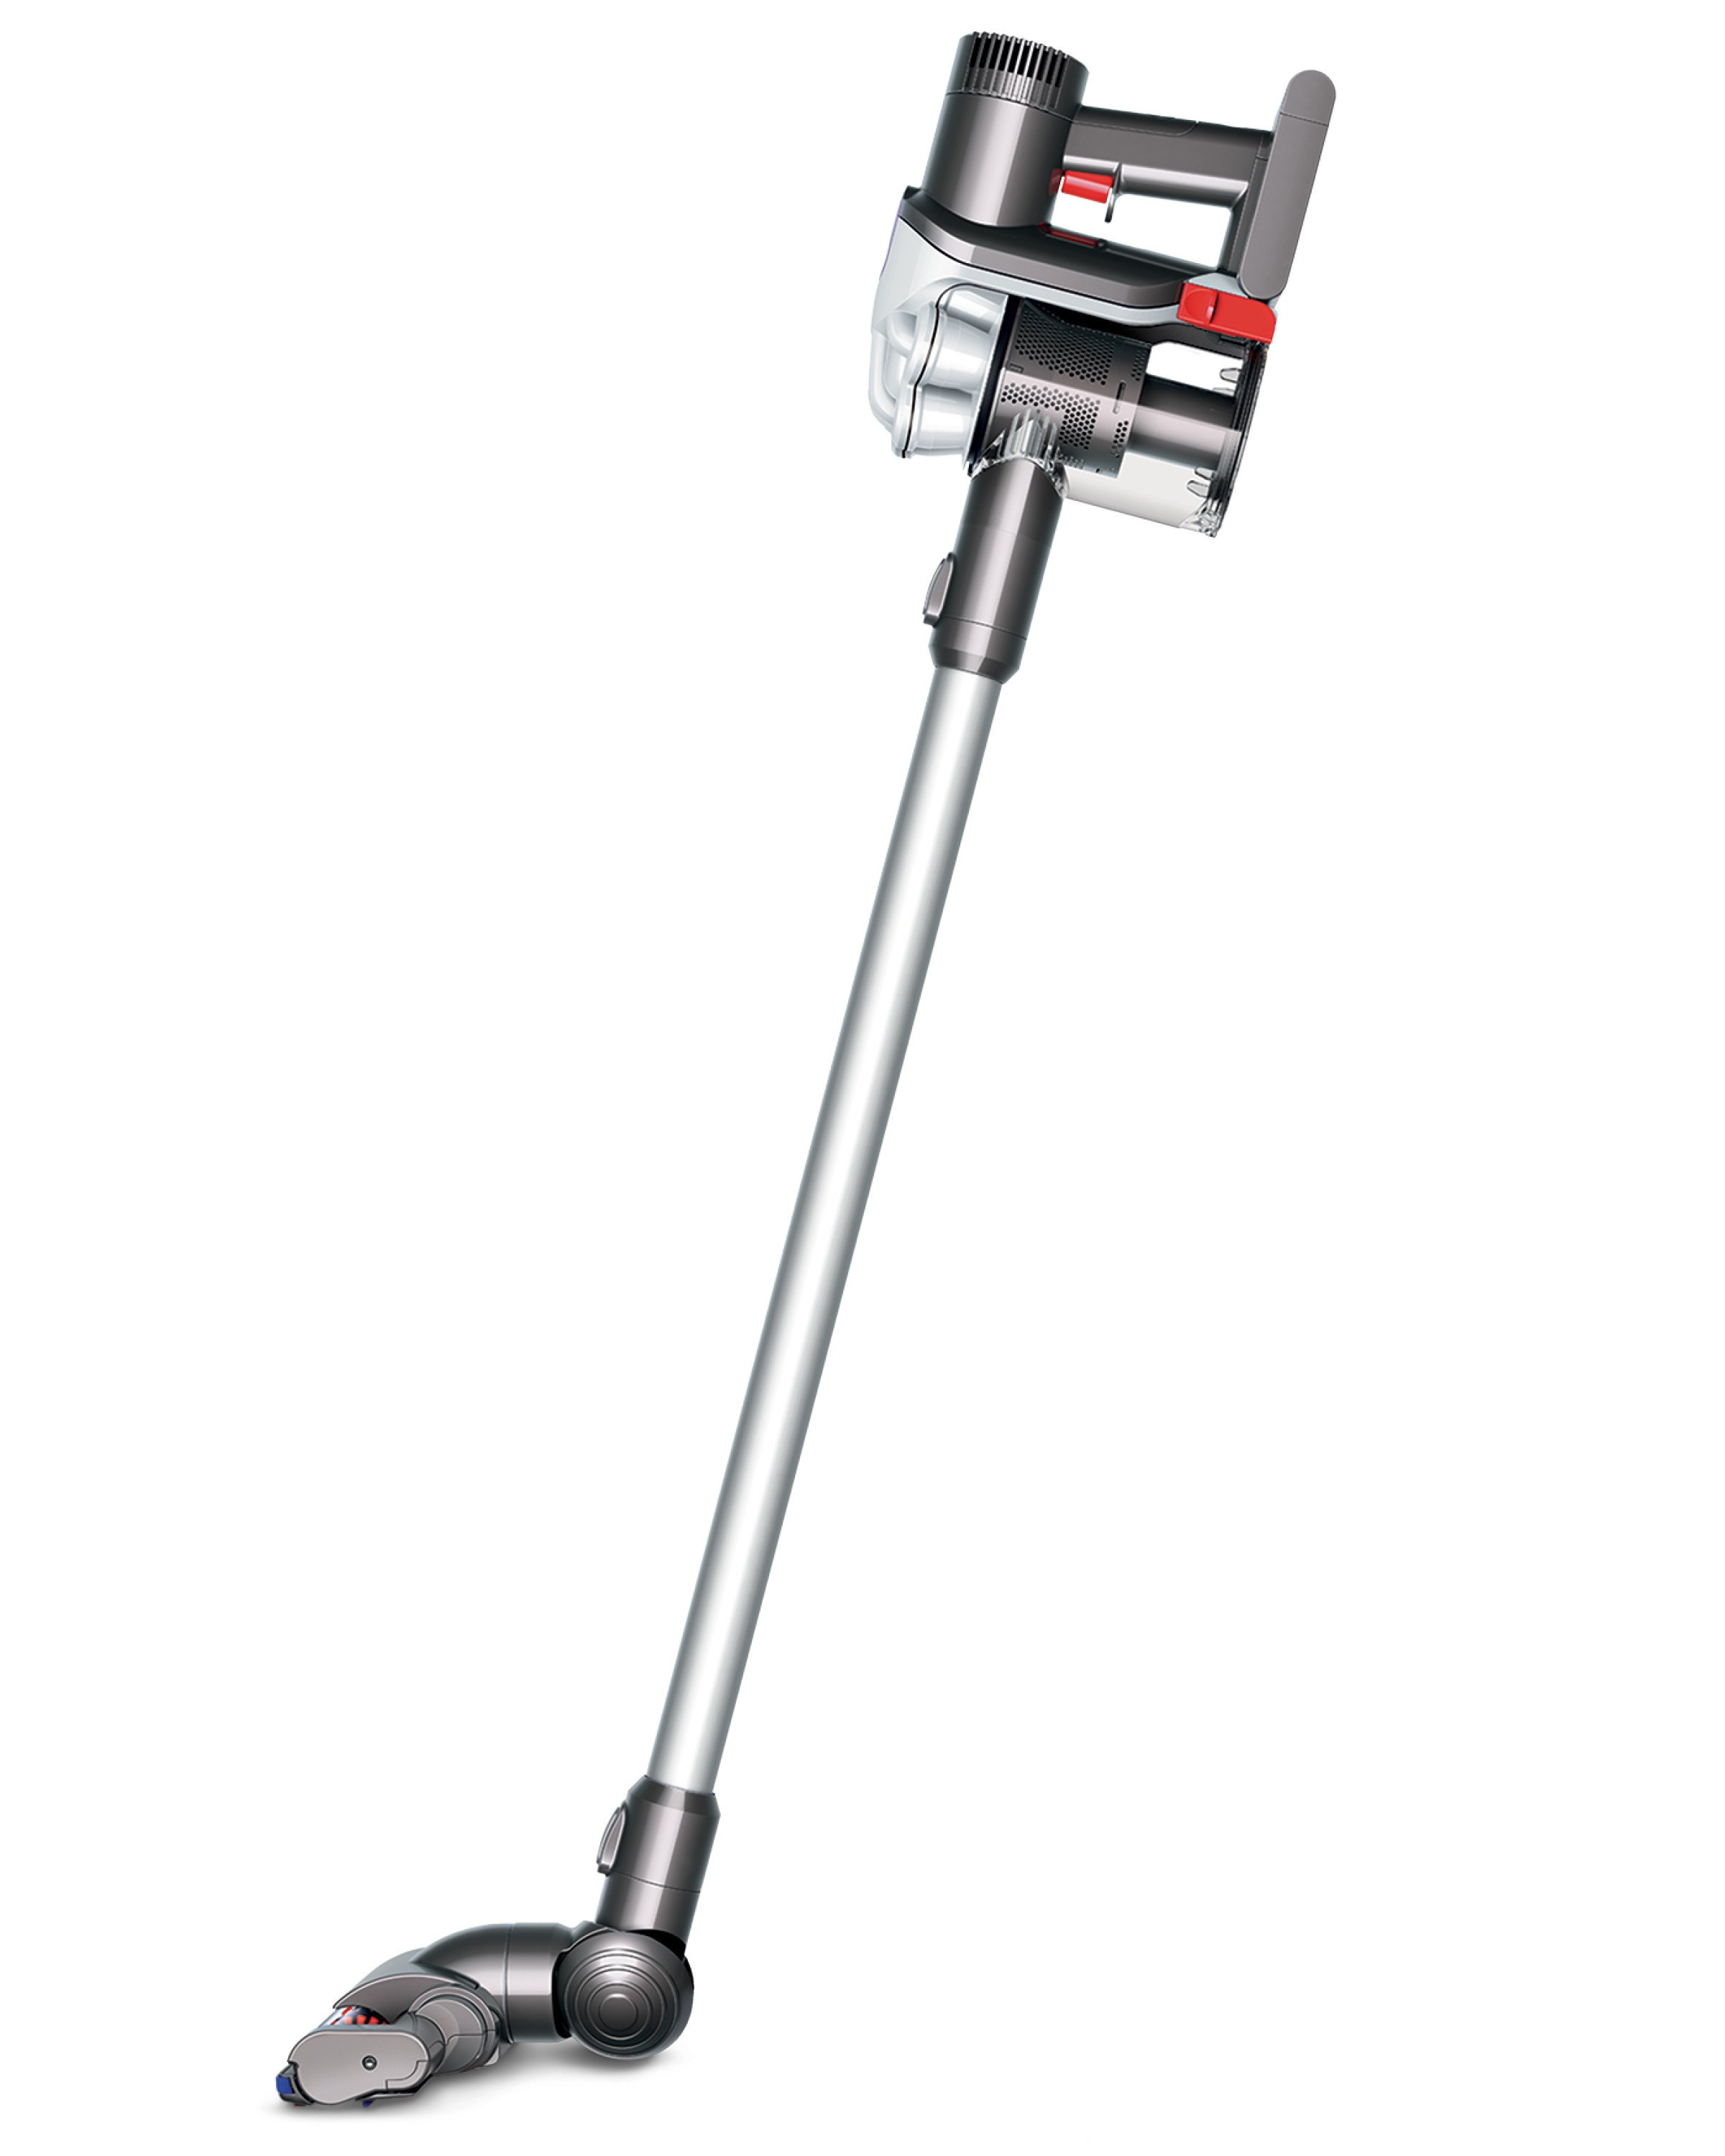 Dyson or electrolux root cyclone technology dyson